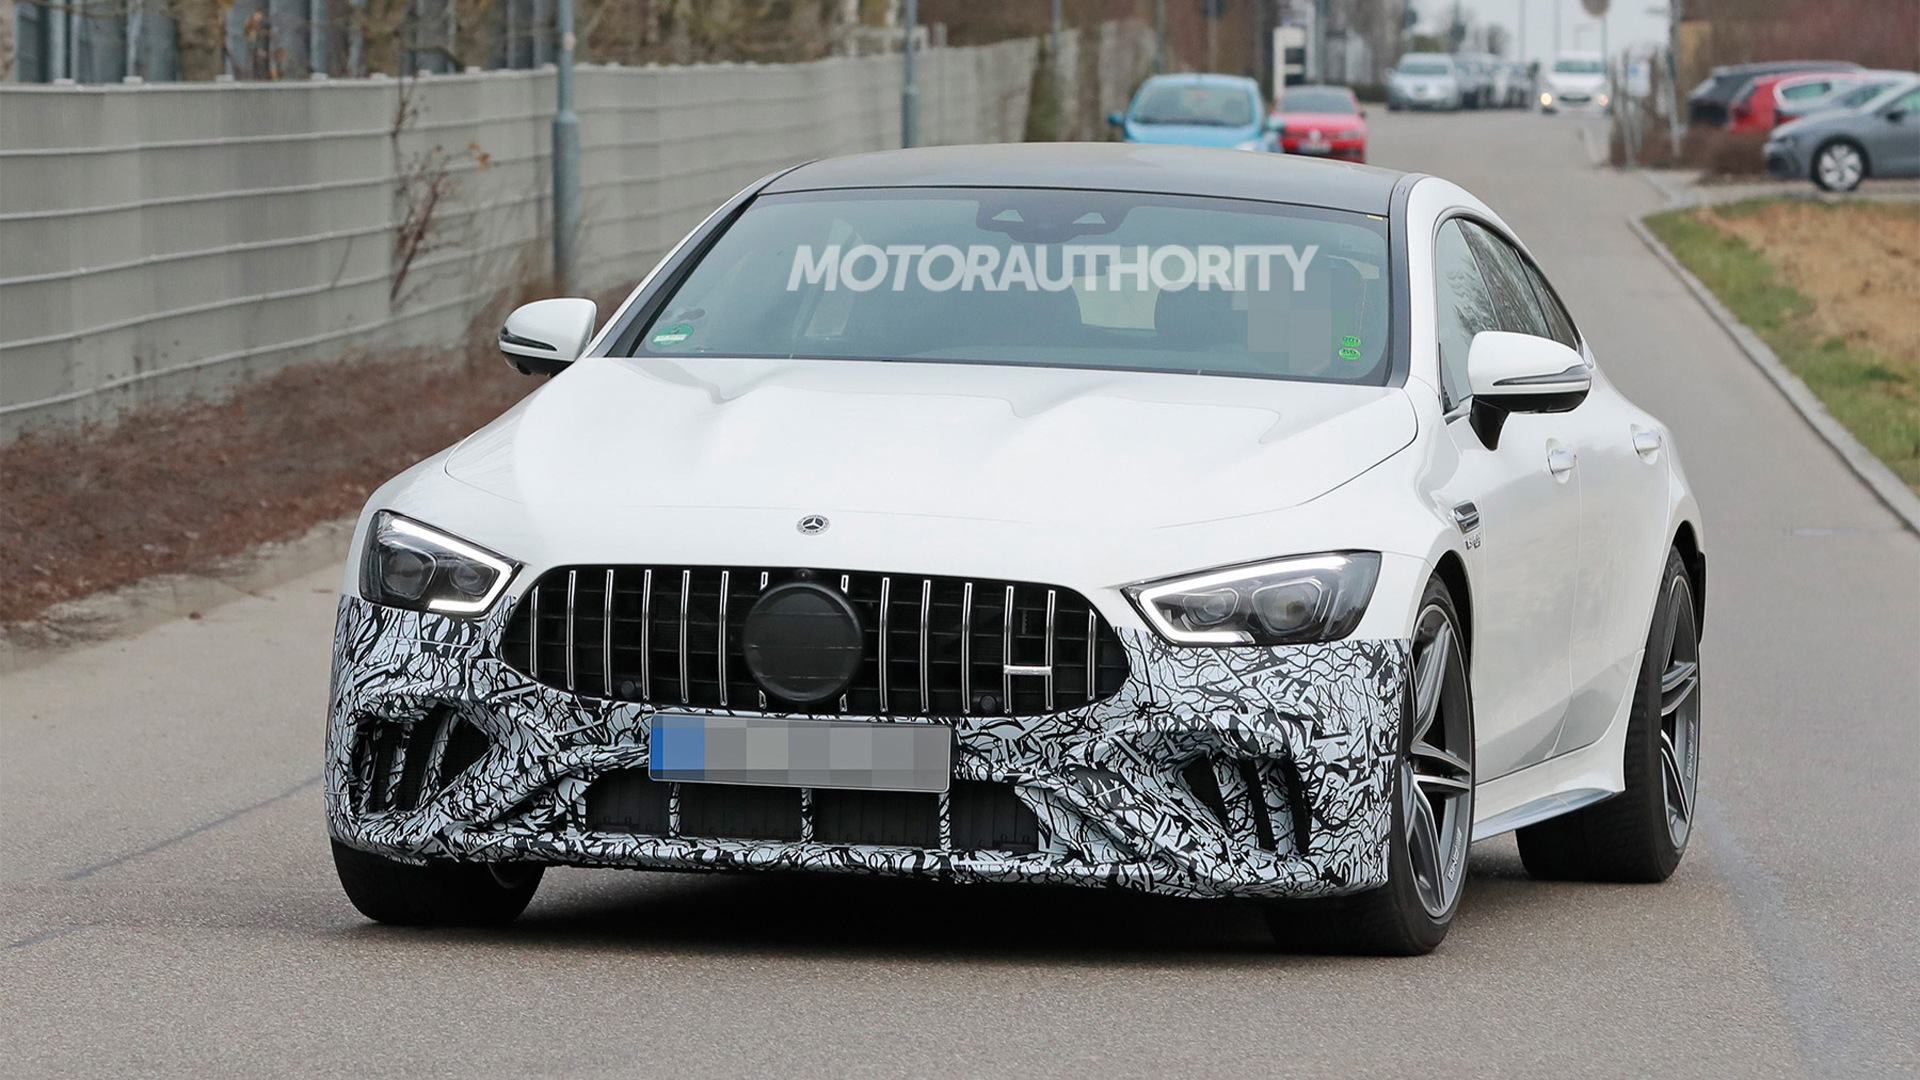 2022 Mercedes-Benz AMG GT 4-Door Coupe facelift spy shots - Photo credit: S. Baldauf/SB-Medien